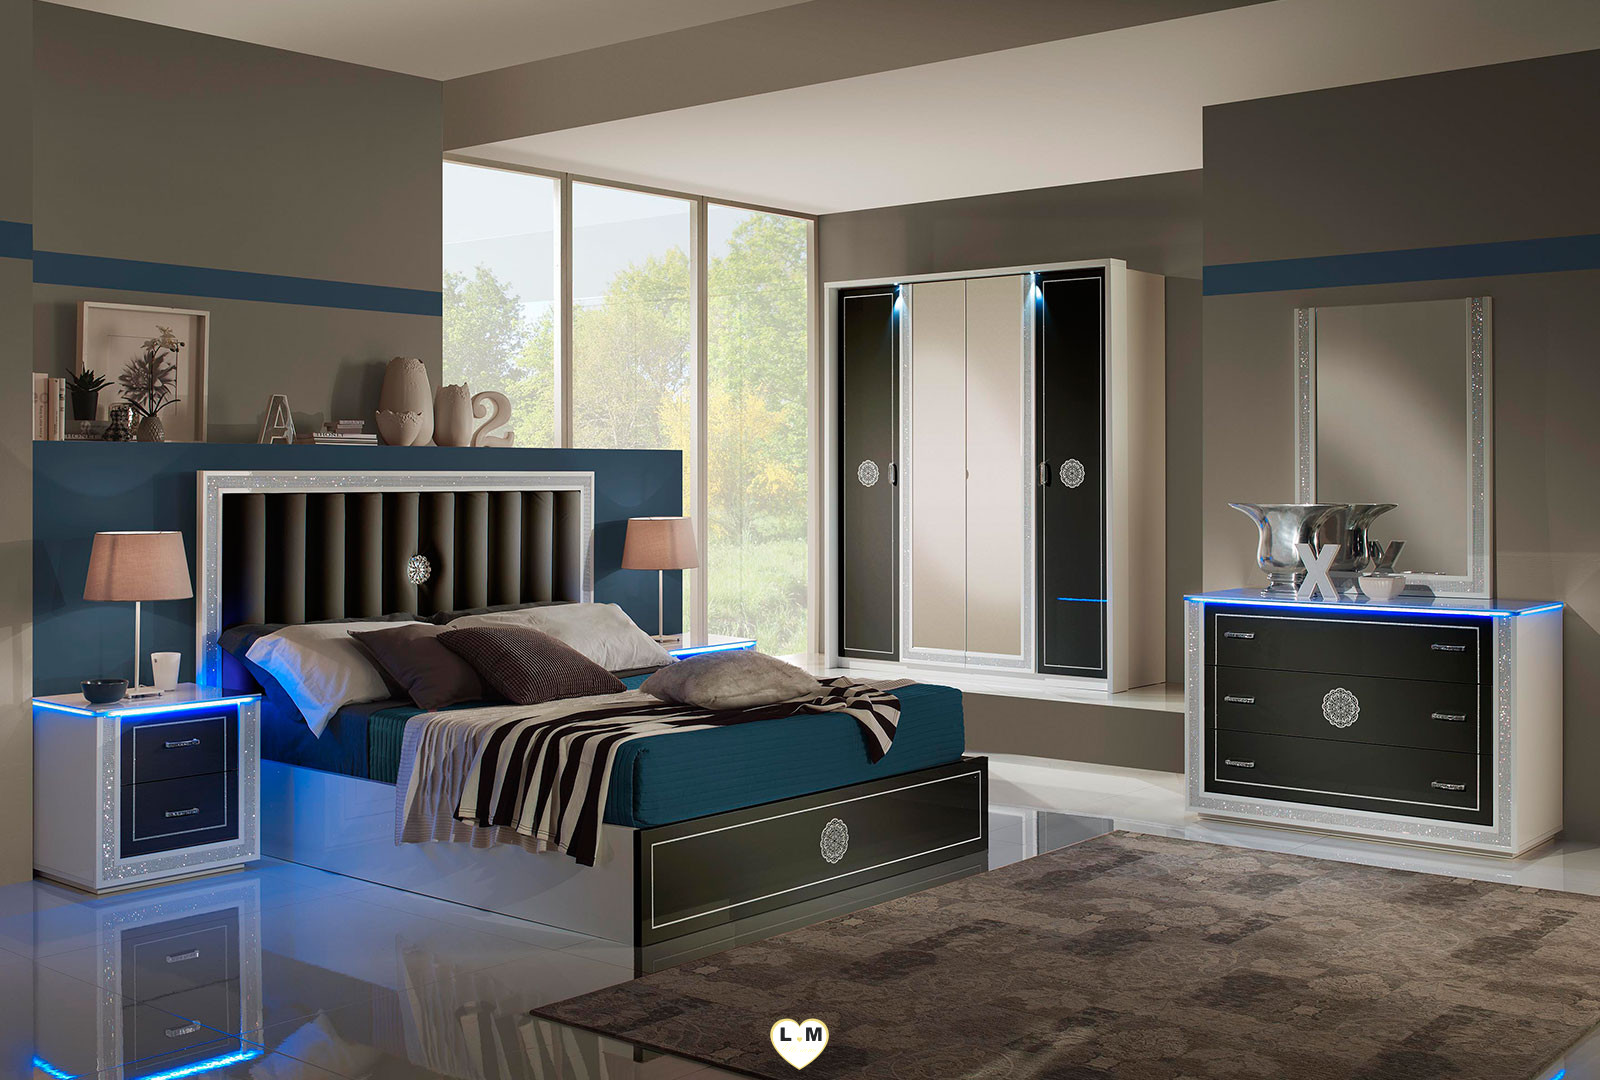 baccara laque noir et blanc ensemble chambre a coucher design lignemeuble com. Black Bedroom Furniture Sets. Home Design Ideas